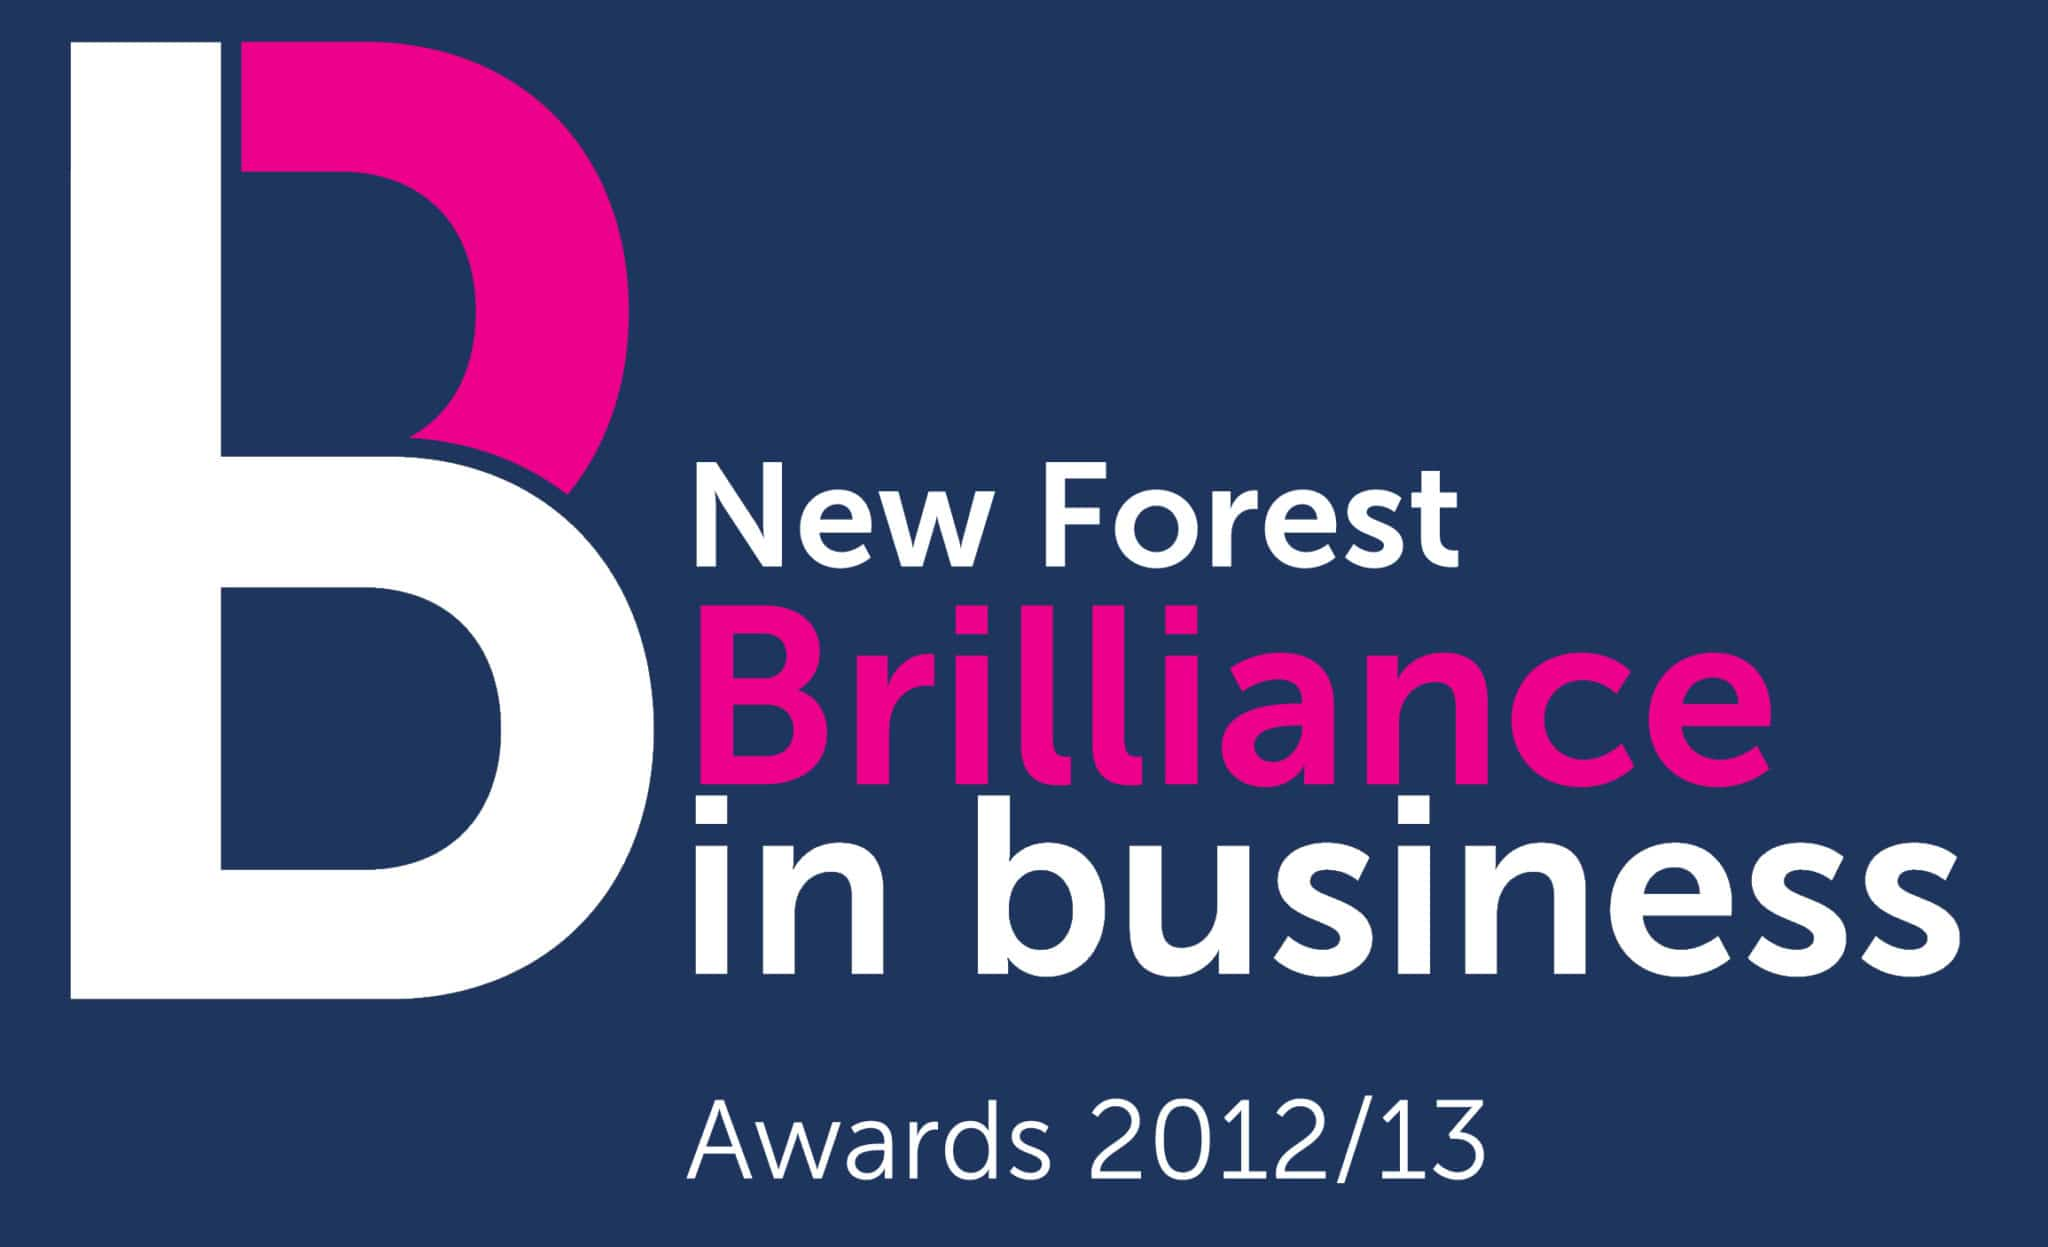 Brilliance in Business Awards 2012/13